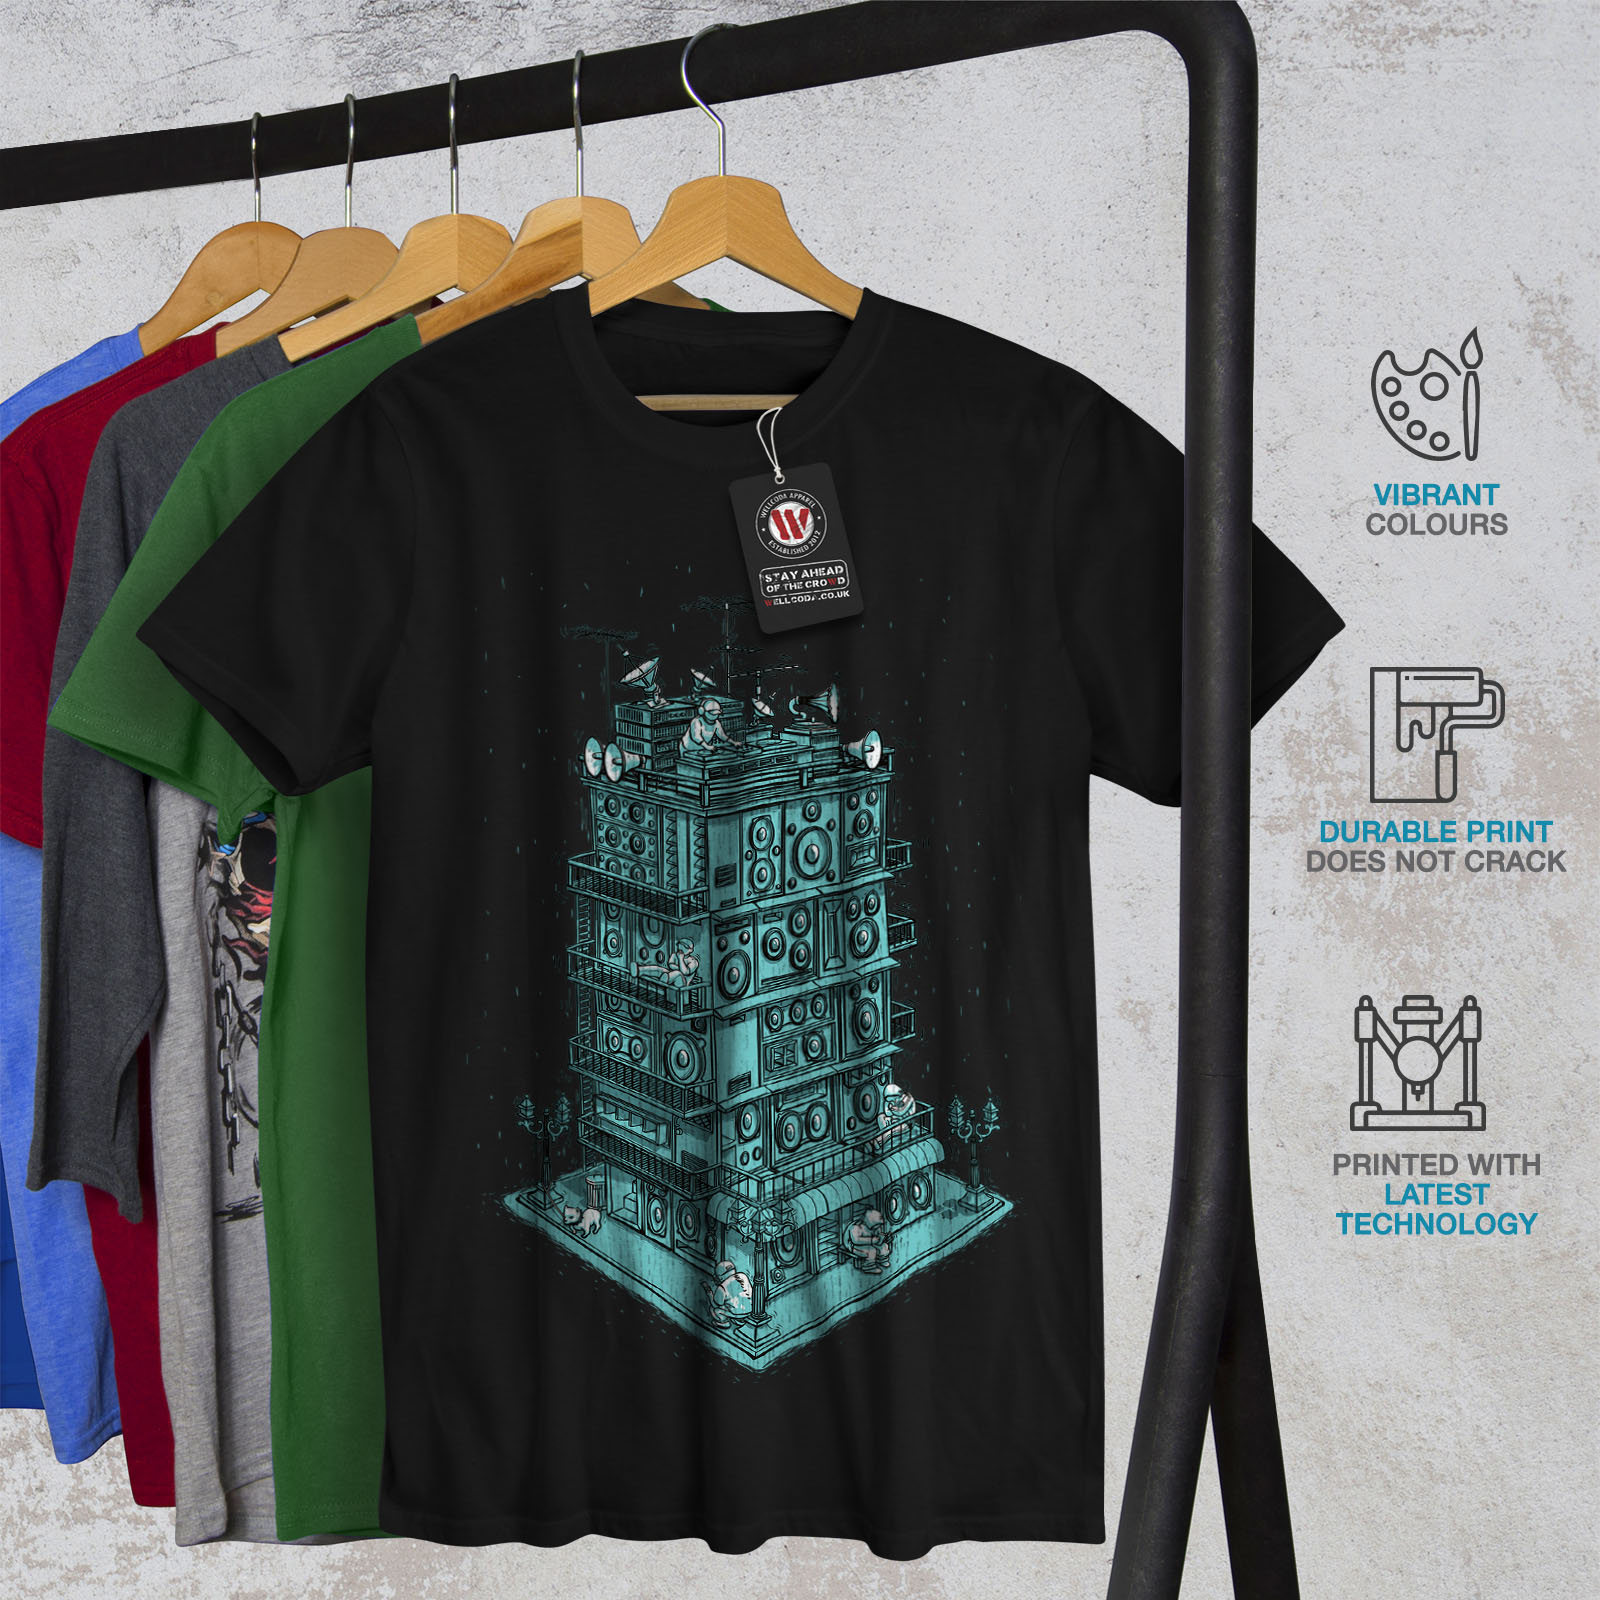 How To Print Design On T Shirt At Home Joe Maloy